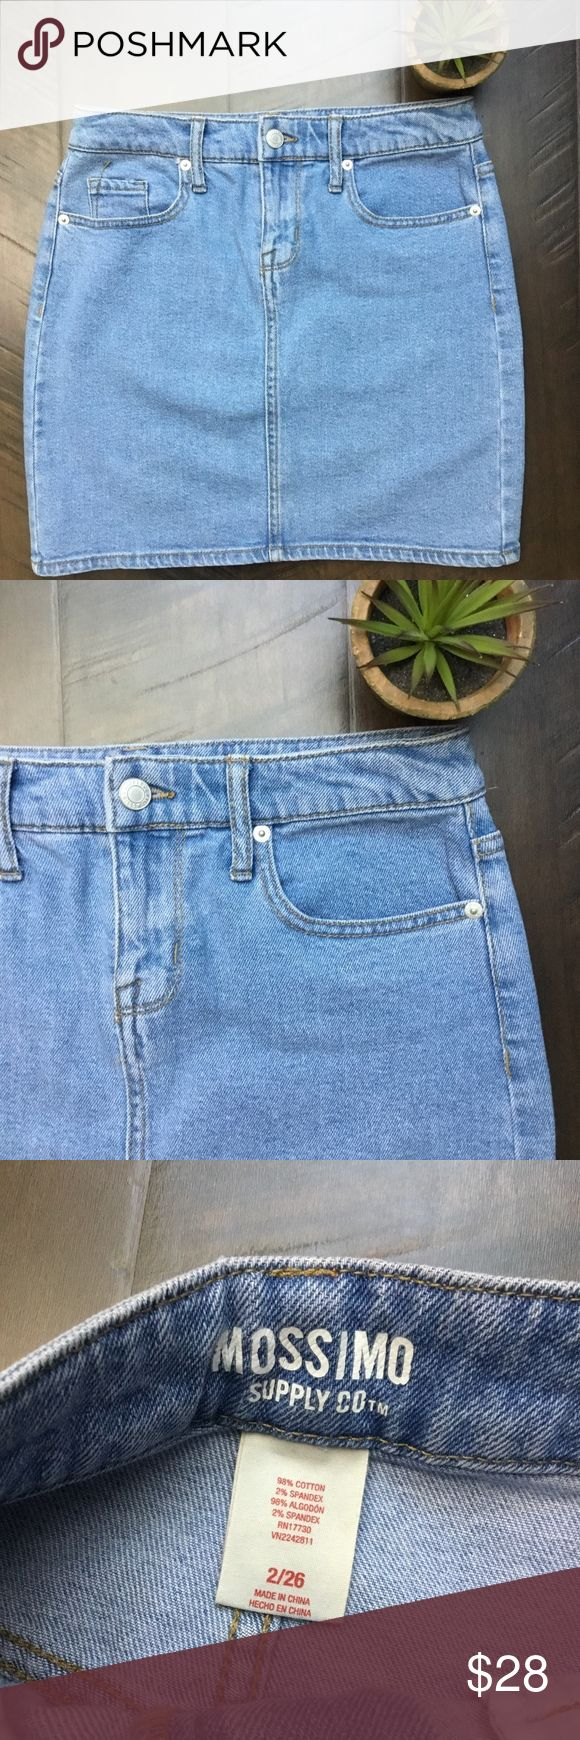 """Mossimo Supply Co Denim Jean Mini Skirt Mossimo Supply Co Denim Jean Mini Skirt.  26. Approximately 29"""" waist,  35"""" hip, 16"""" in length. EUC, no flaws to note. Light wash. Mossimo Supply Co. Skirts Mini"""